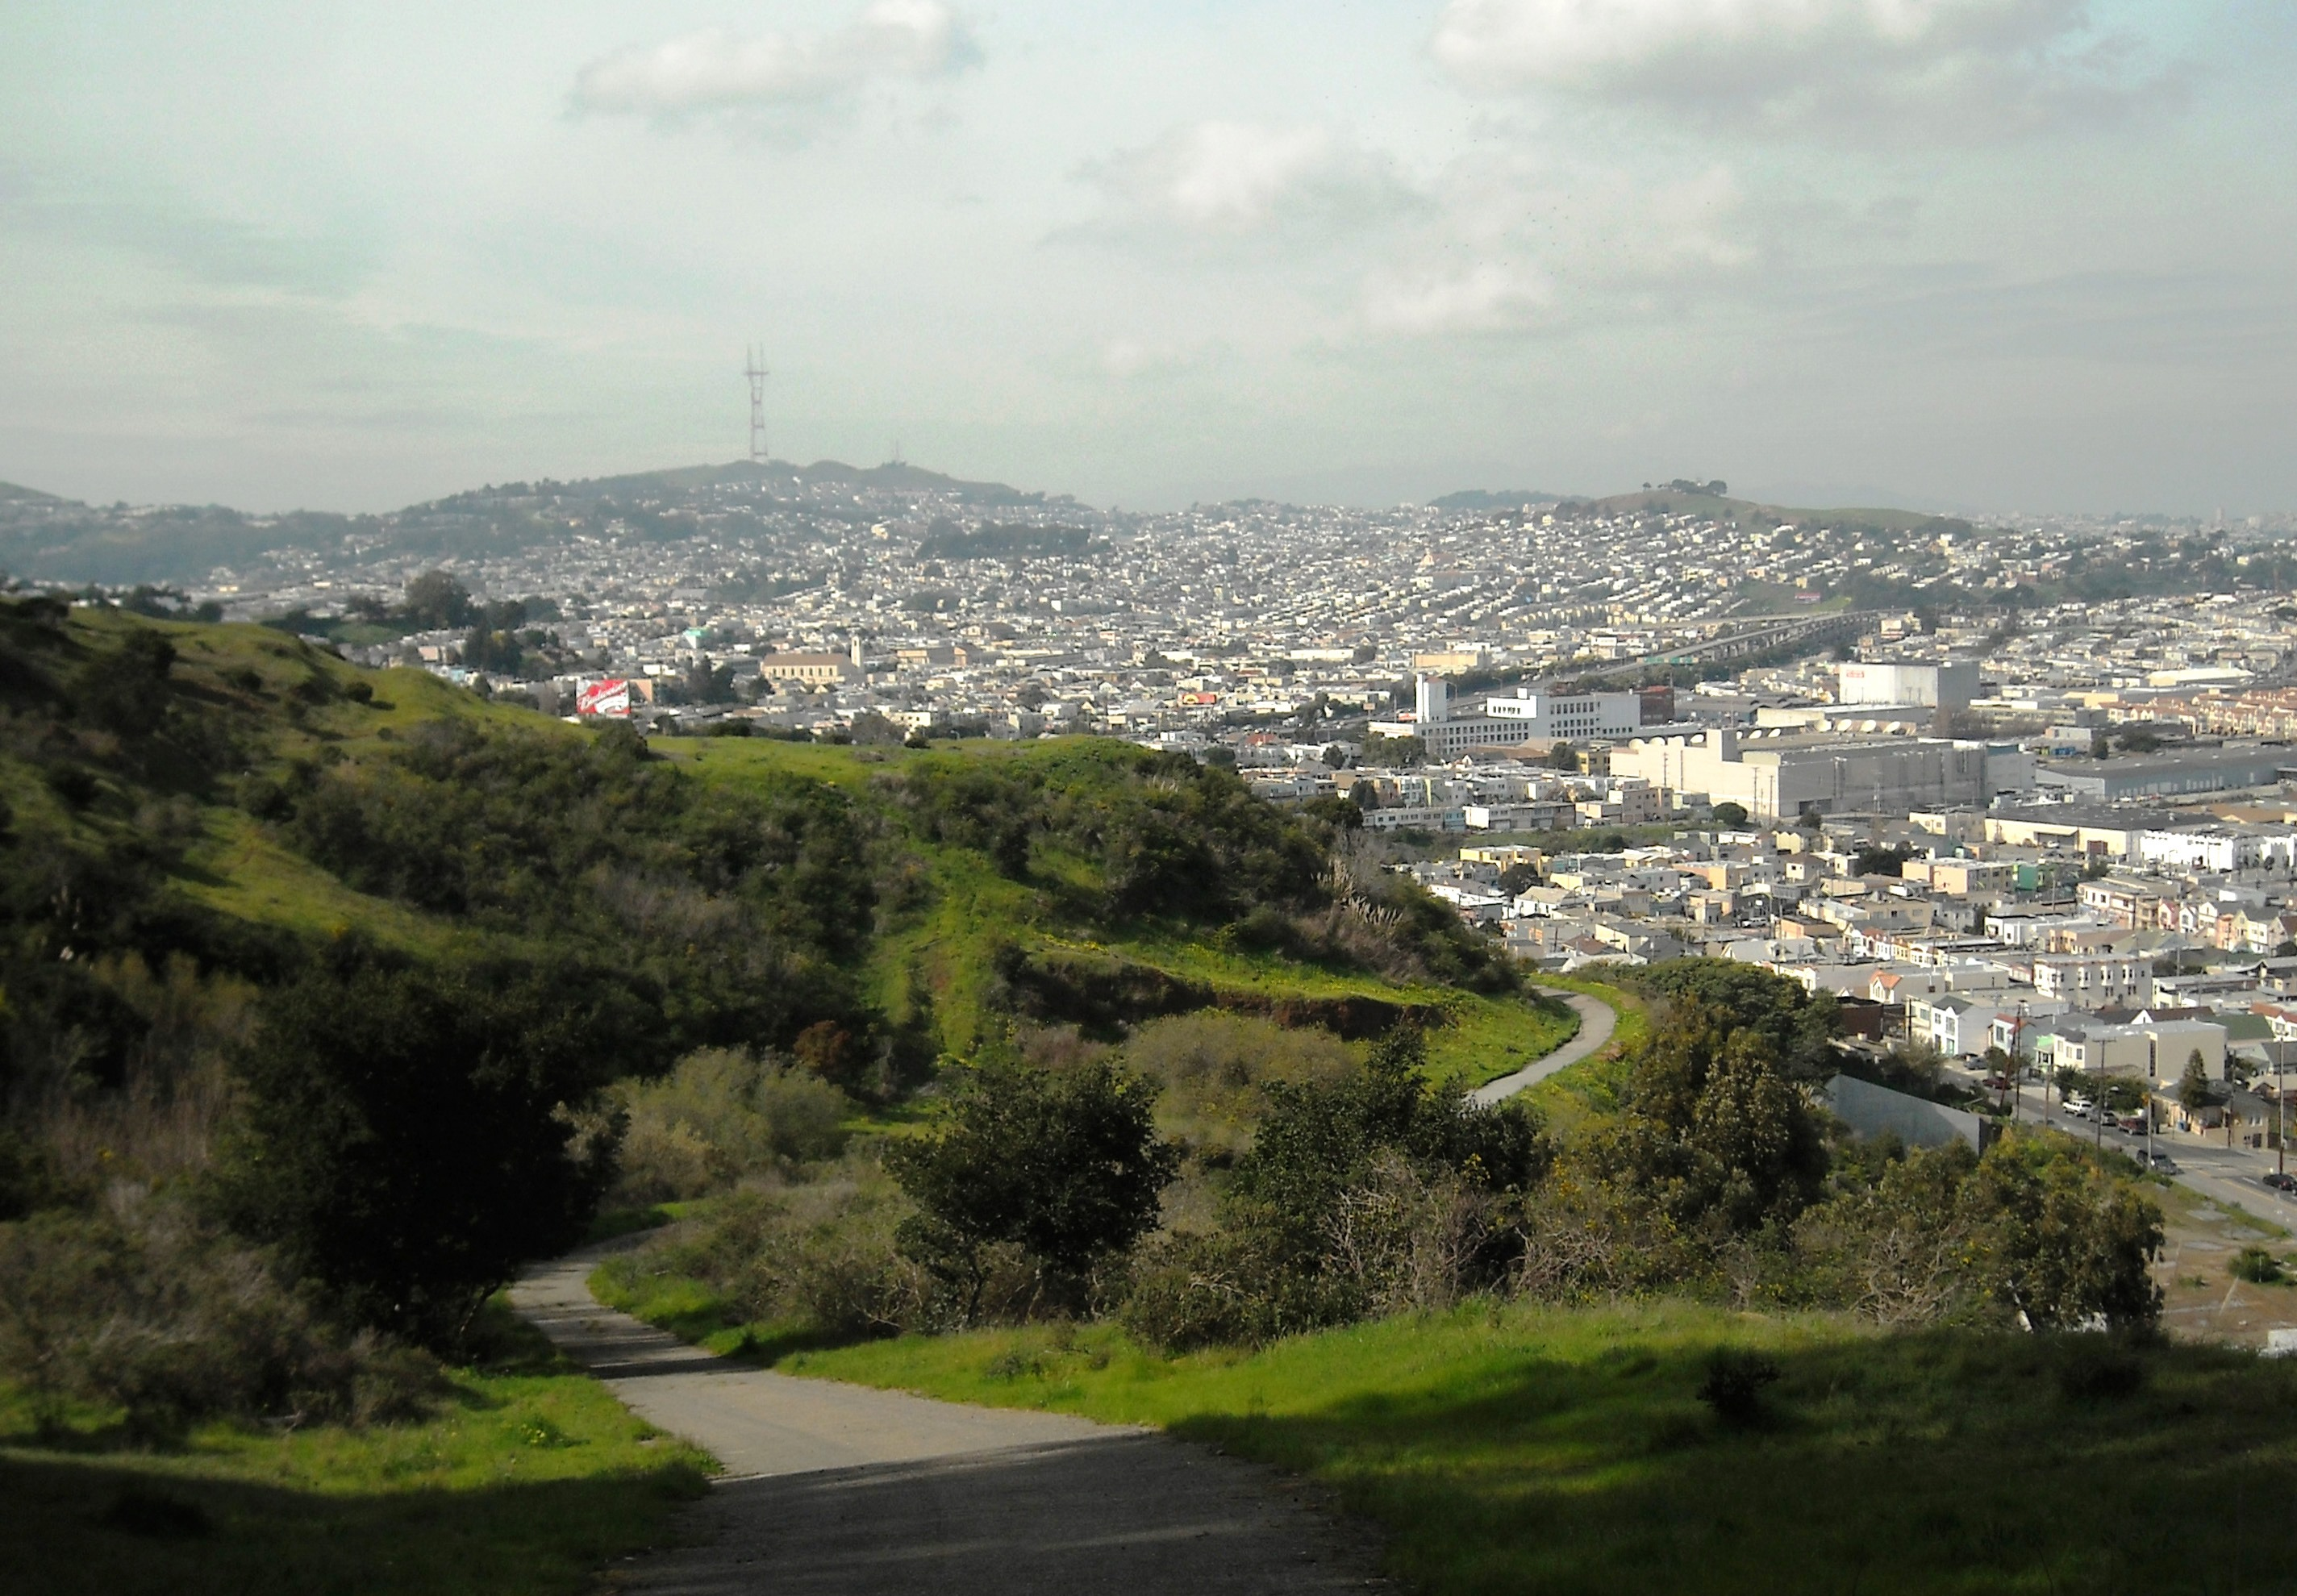 The view from Bayview Park.